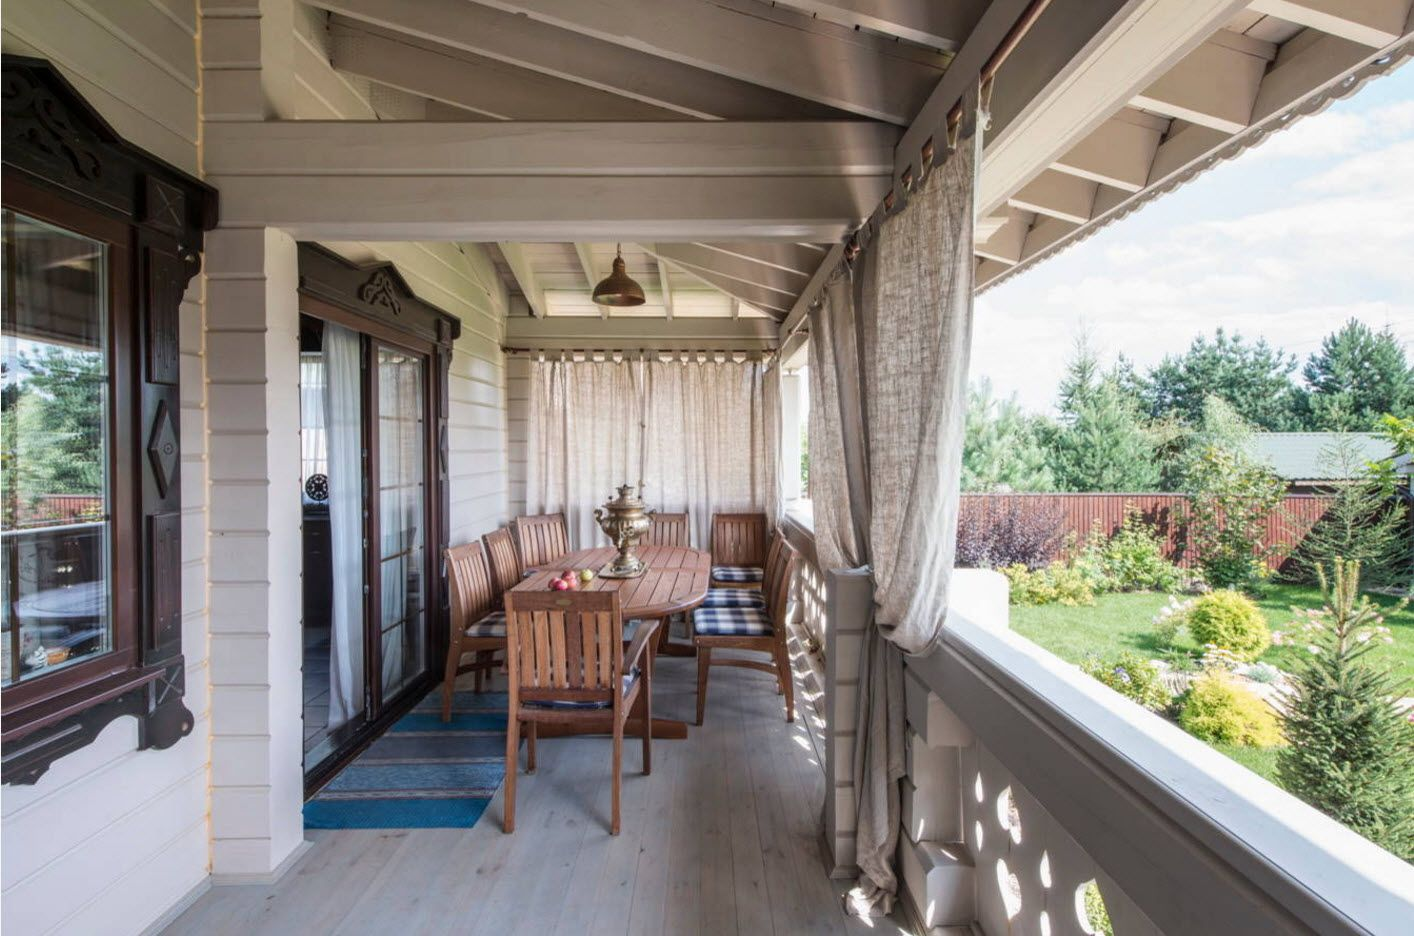 Country House Porch Decoration & Design Ideas. Gray modern style for the outdoor patio at the private house with curtains